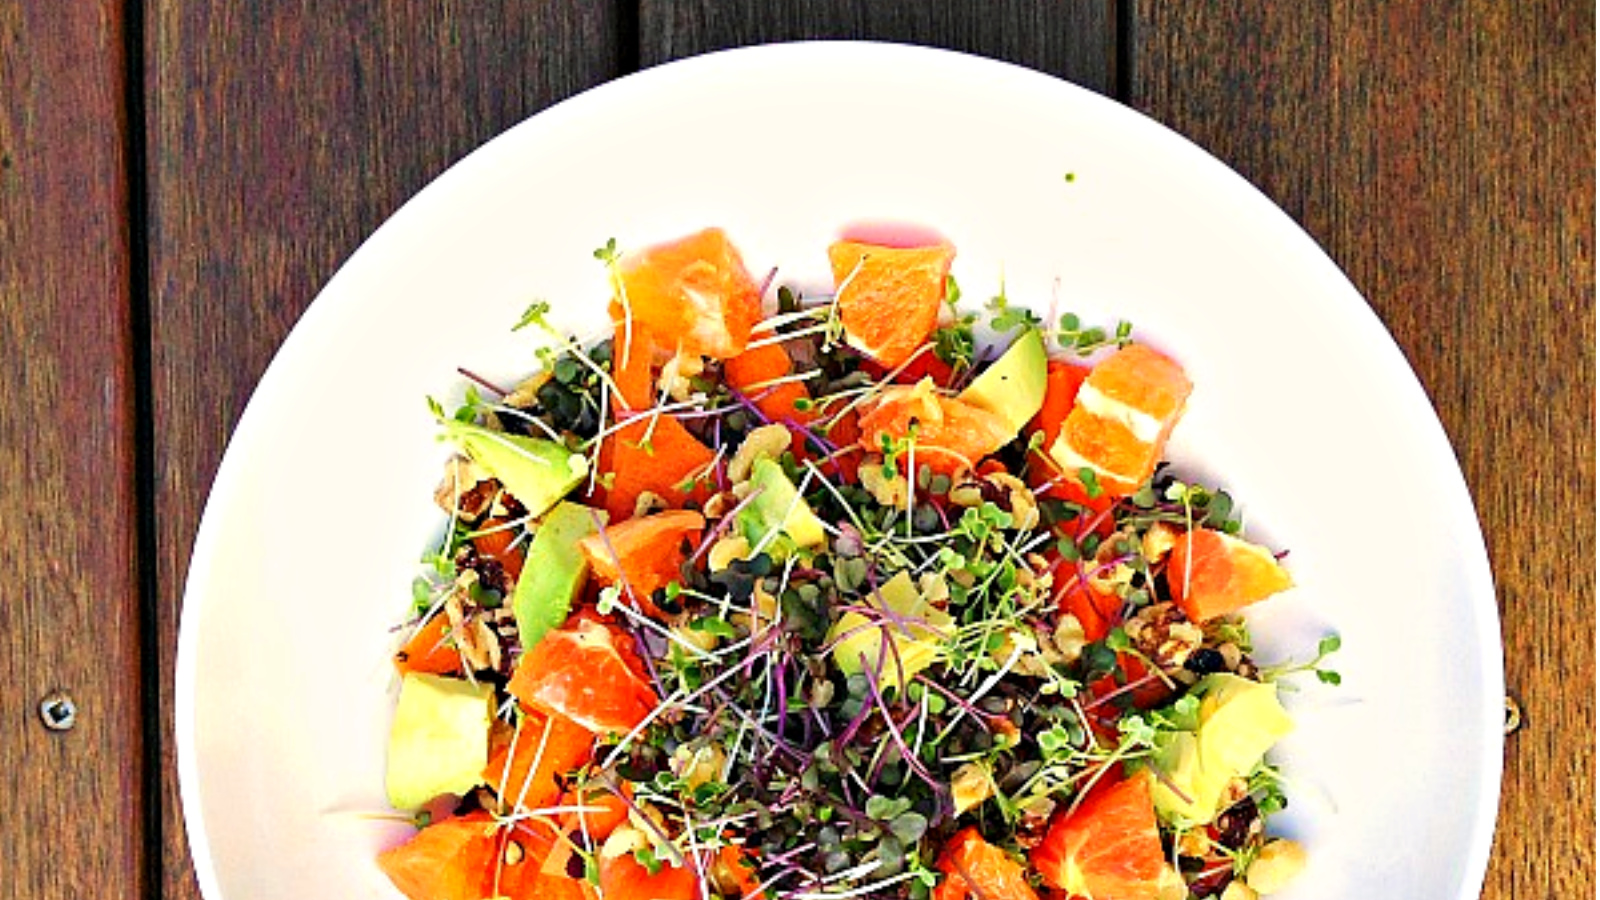 Microgreens recipe - Microgreen & Orange salad